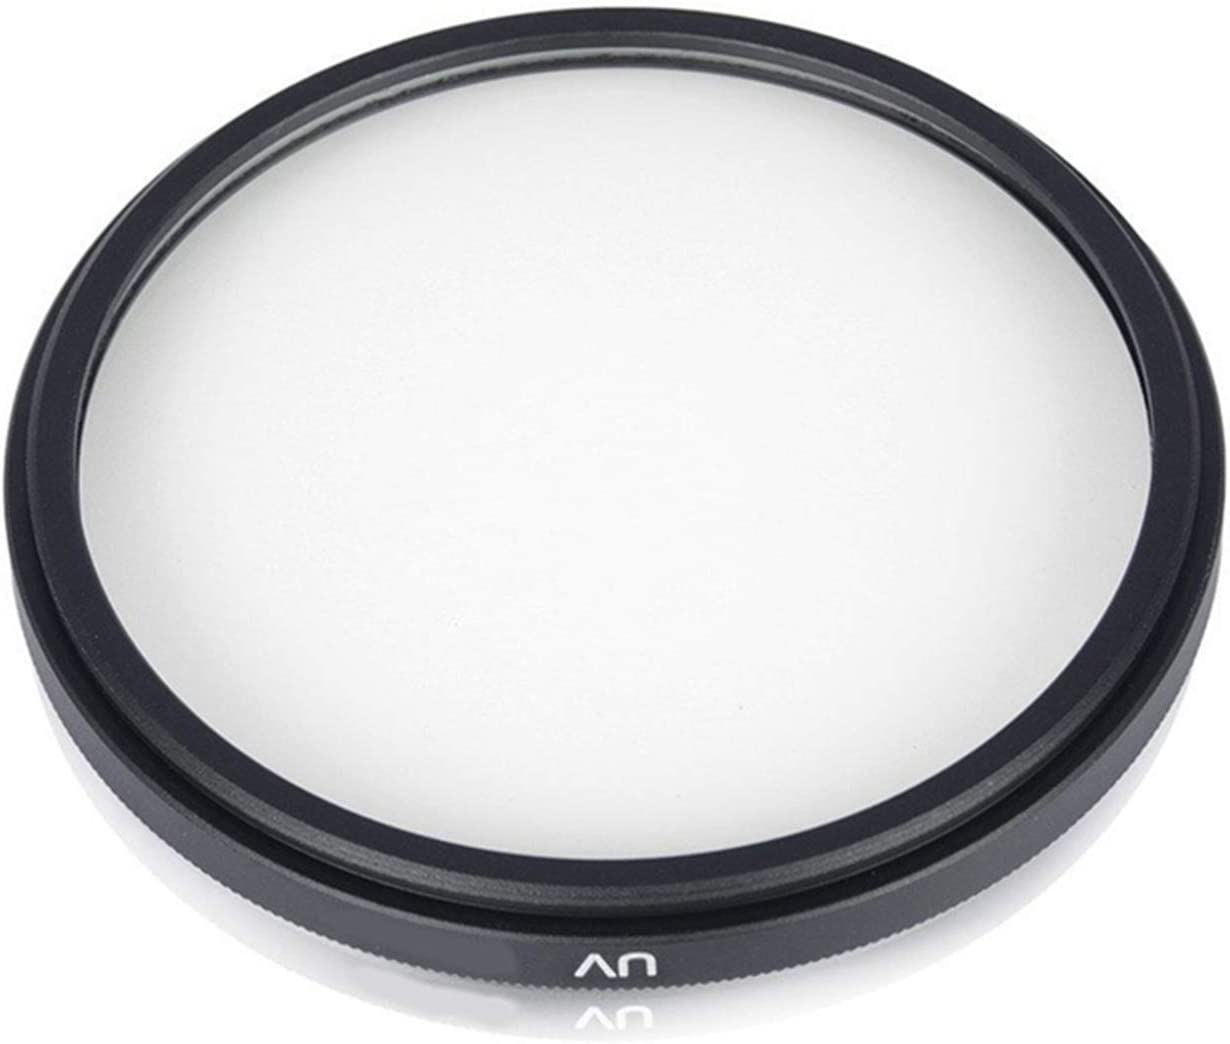 3pcs Filter Lens 49mm 52mm 55mm 58mm 67mm 72mm 77mm Polarized CPL+UV+FLD Camera Filter Kit with Carrying Bag for Nikon